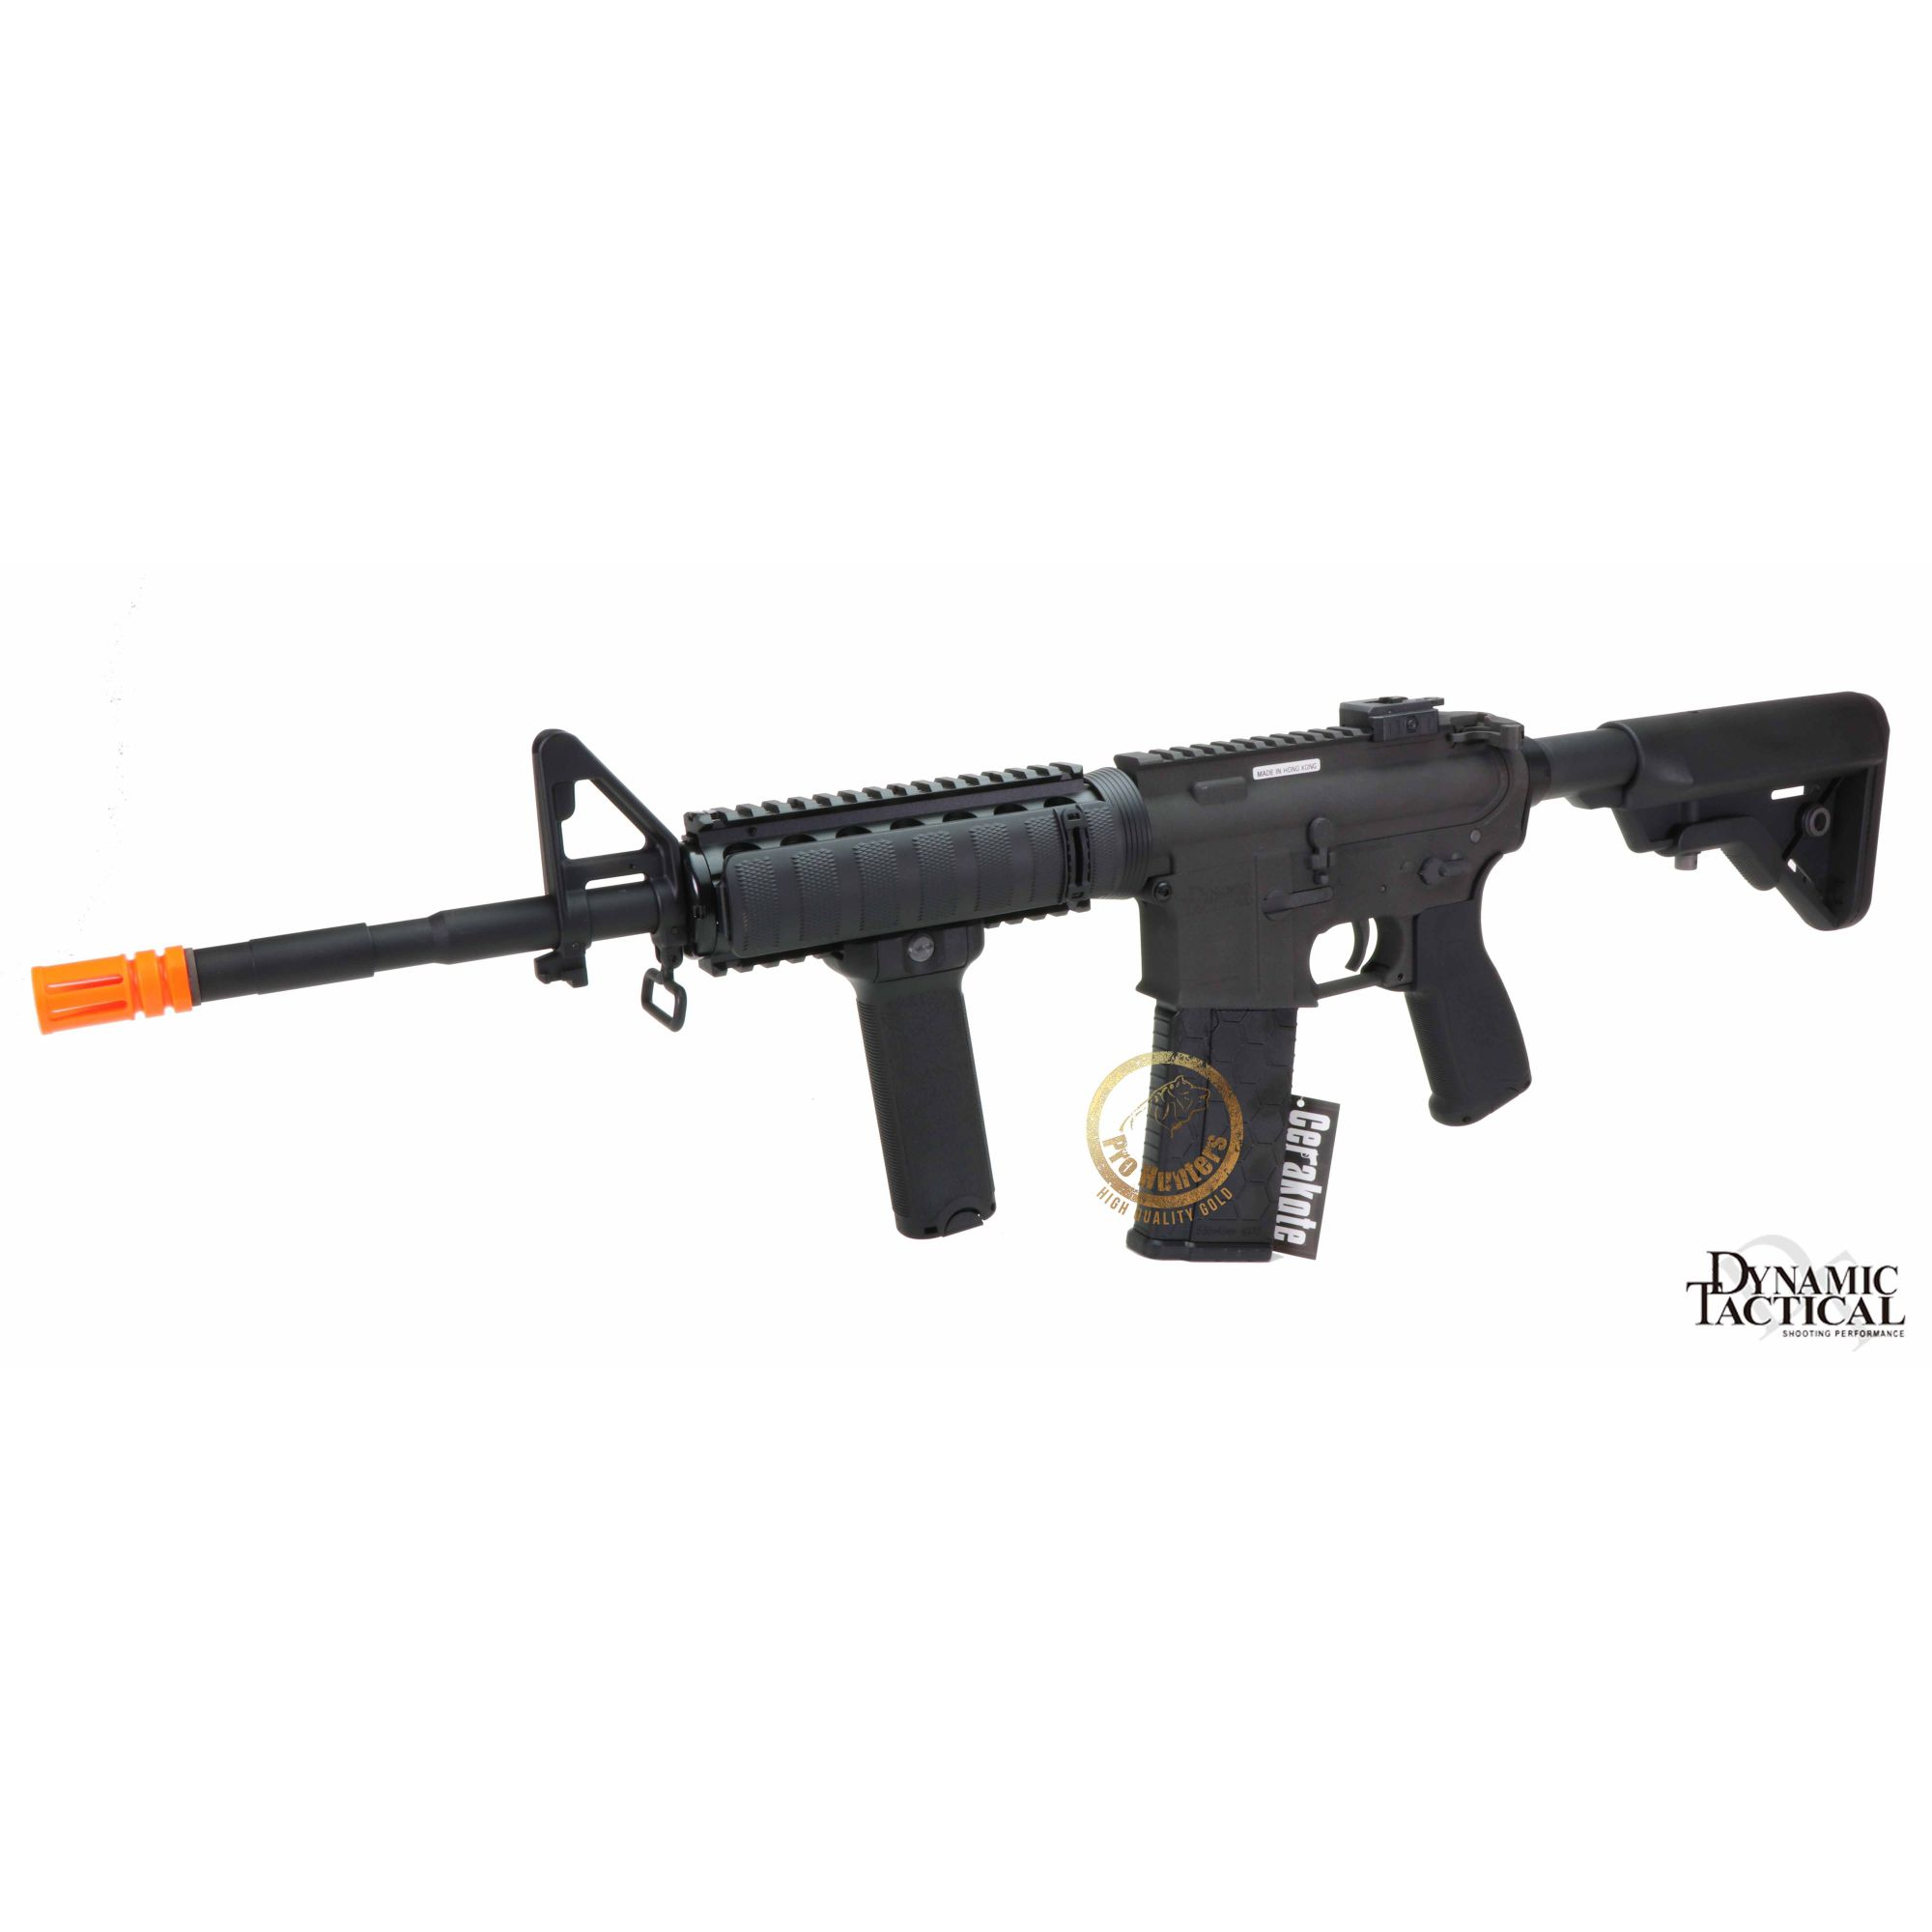 Rifle Airsoft Dytac M4A1 14.5 Pol Carbine Ris - Black